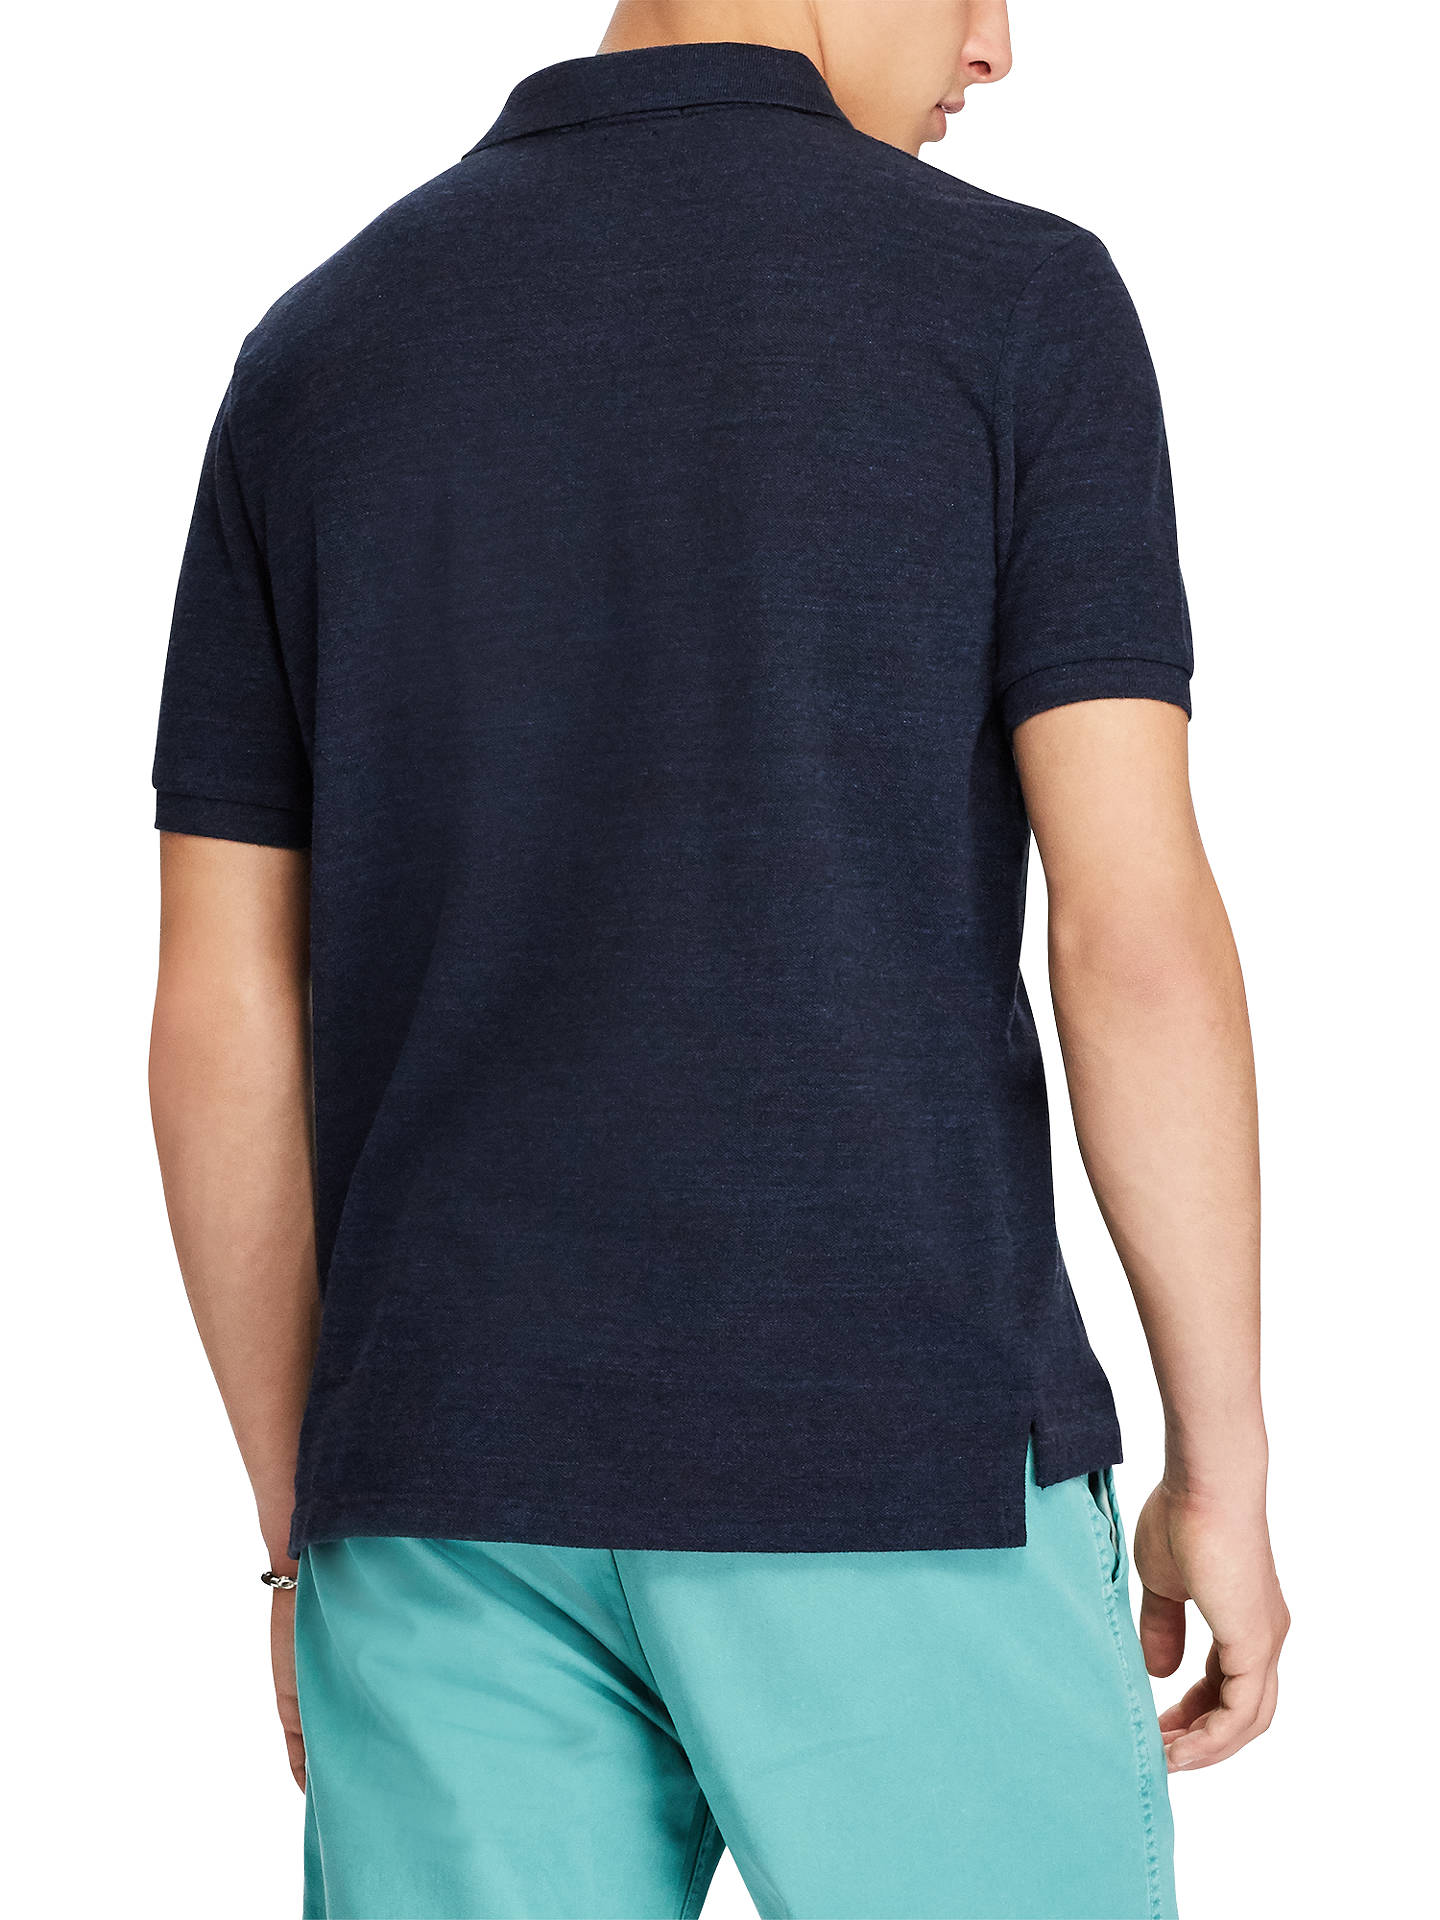 BuyPolo Ralph Lauren Slim Fit Polo Top, Worth Nay Heather, S Online at johnlewis.com